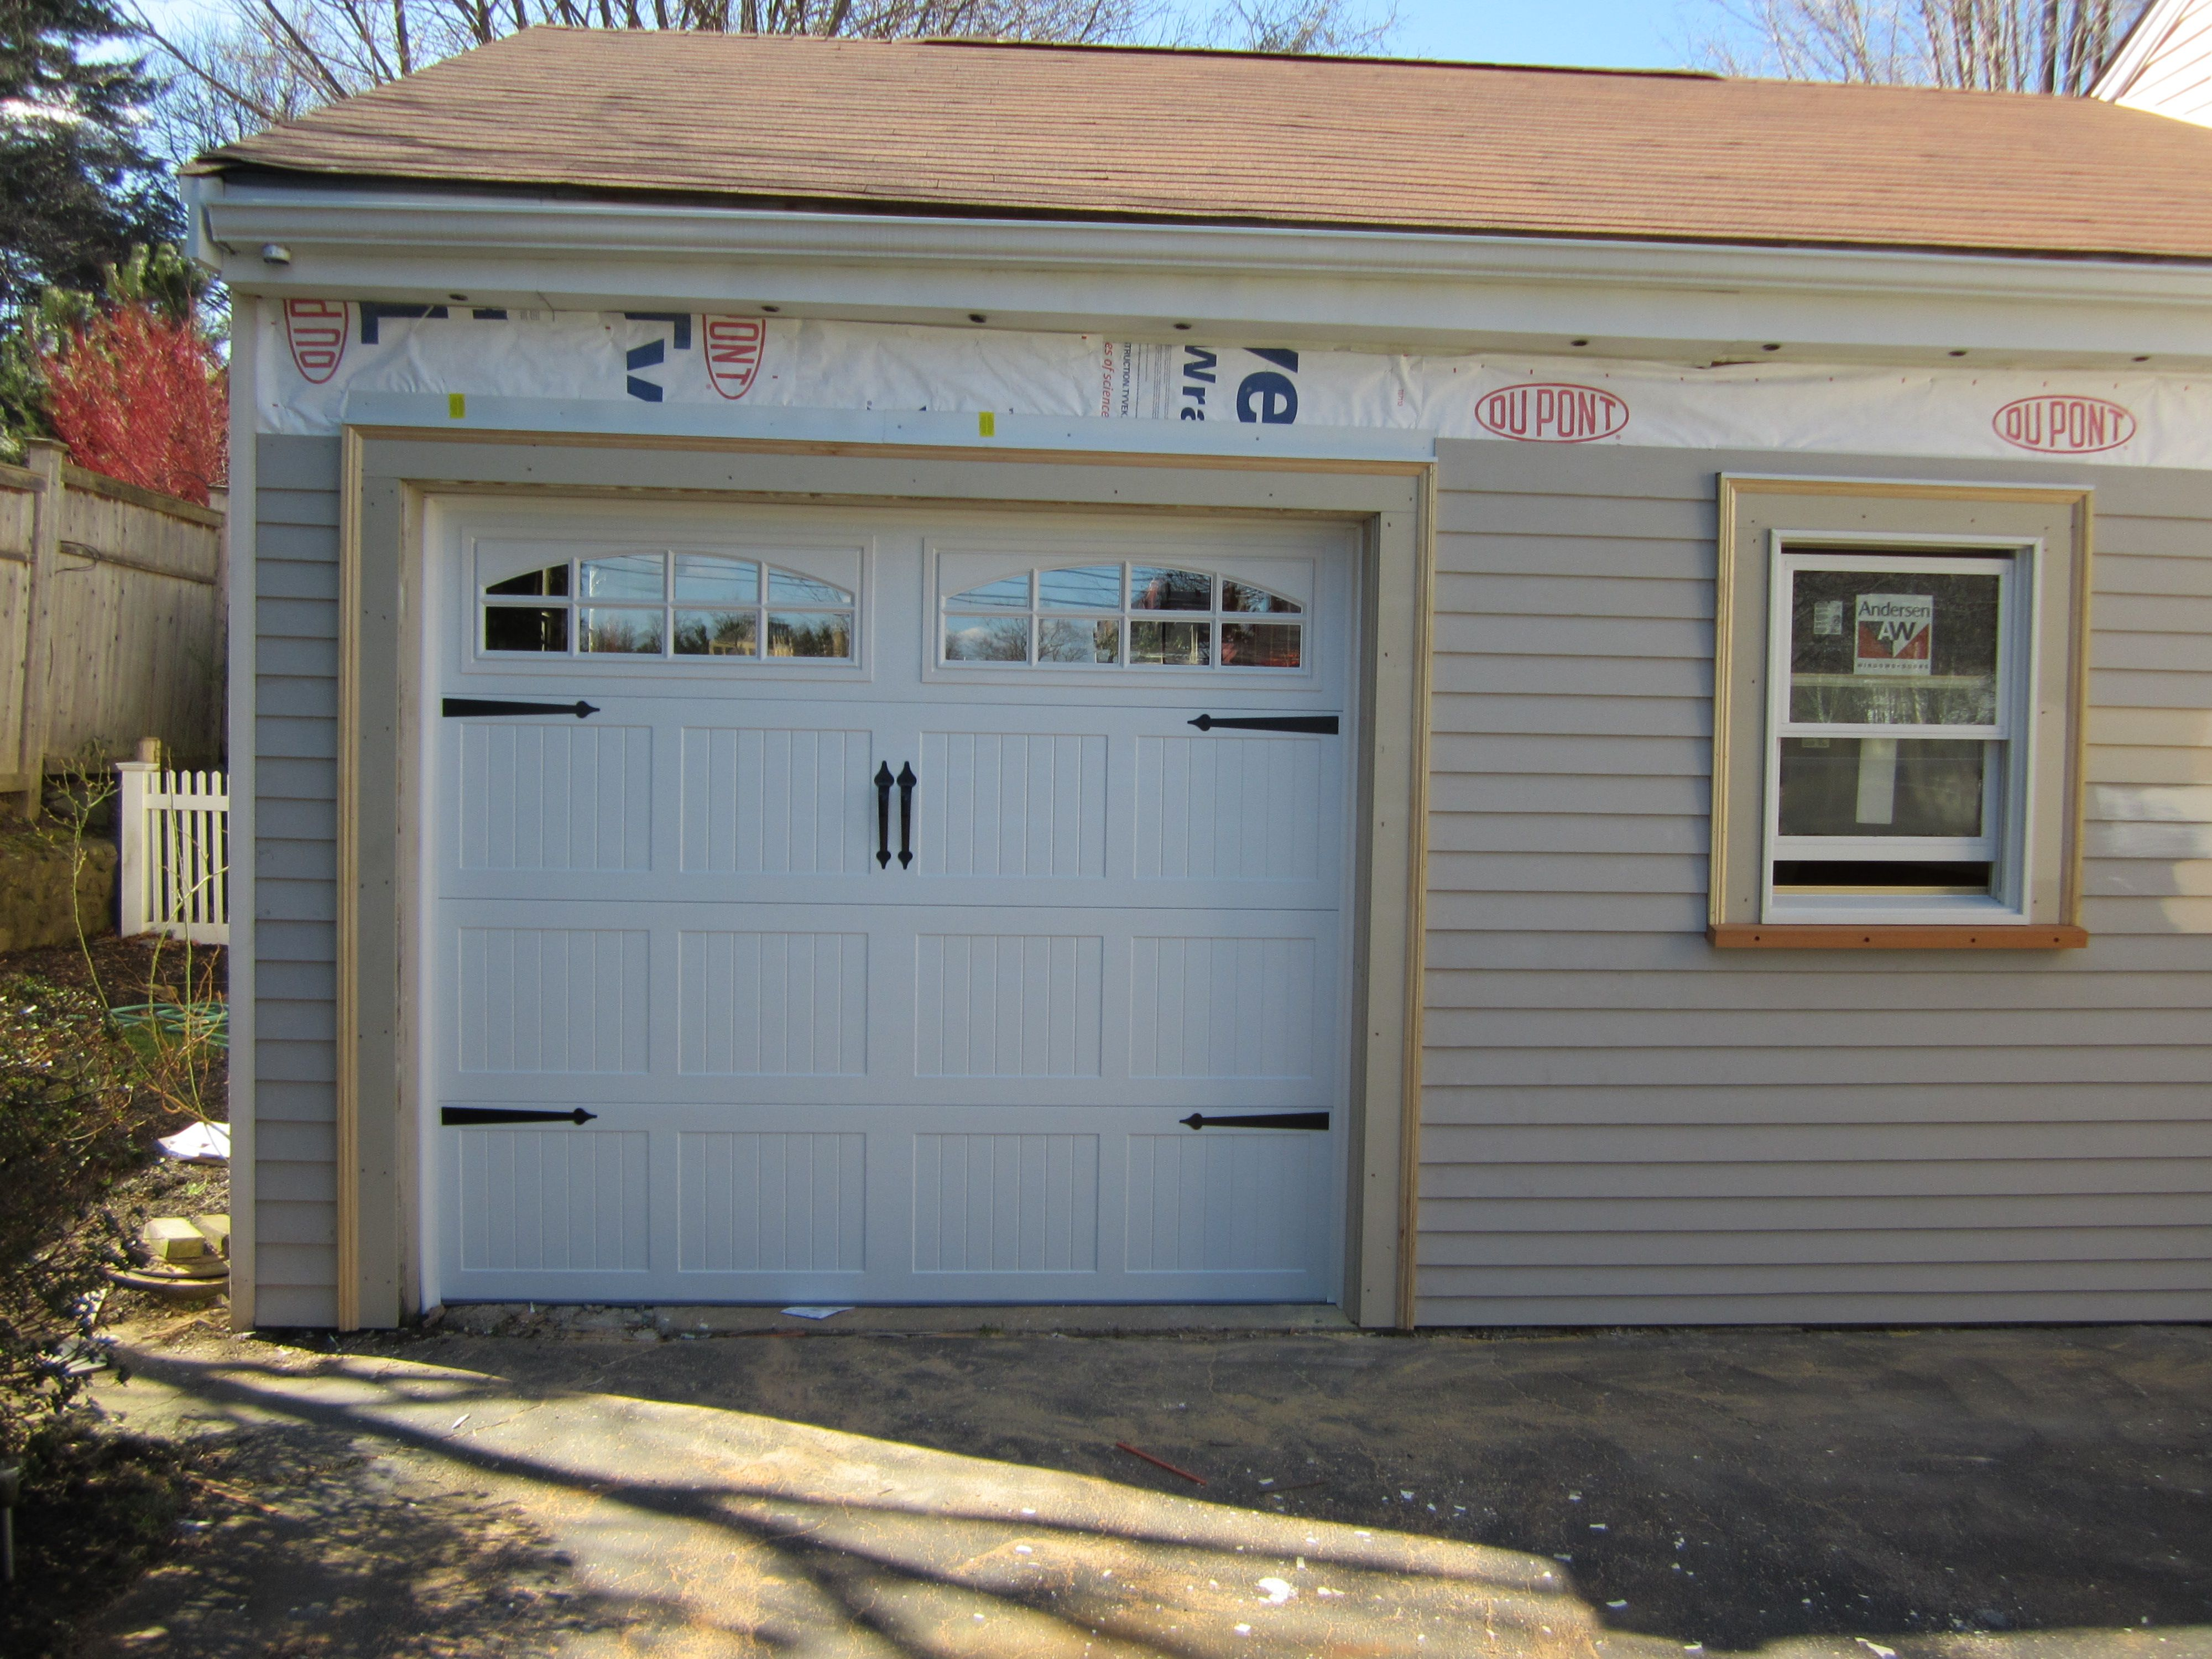 wood faux doors in amazing appeal full door finish cool decorative decor that painting of grain matters hardware size curb garage